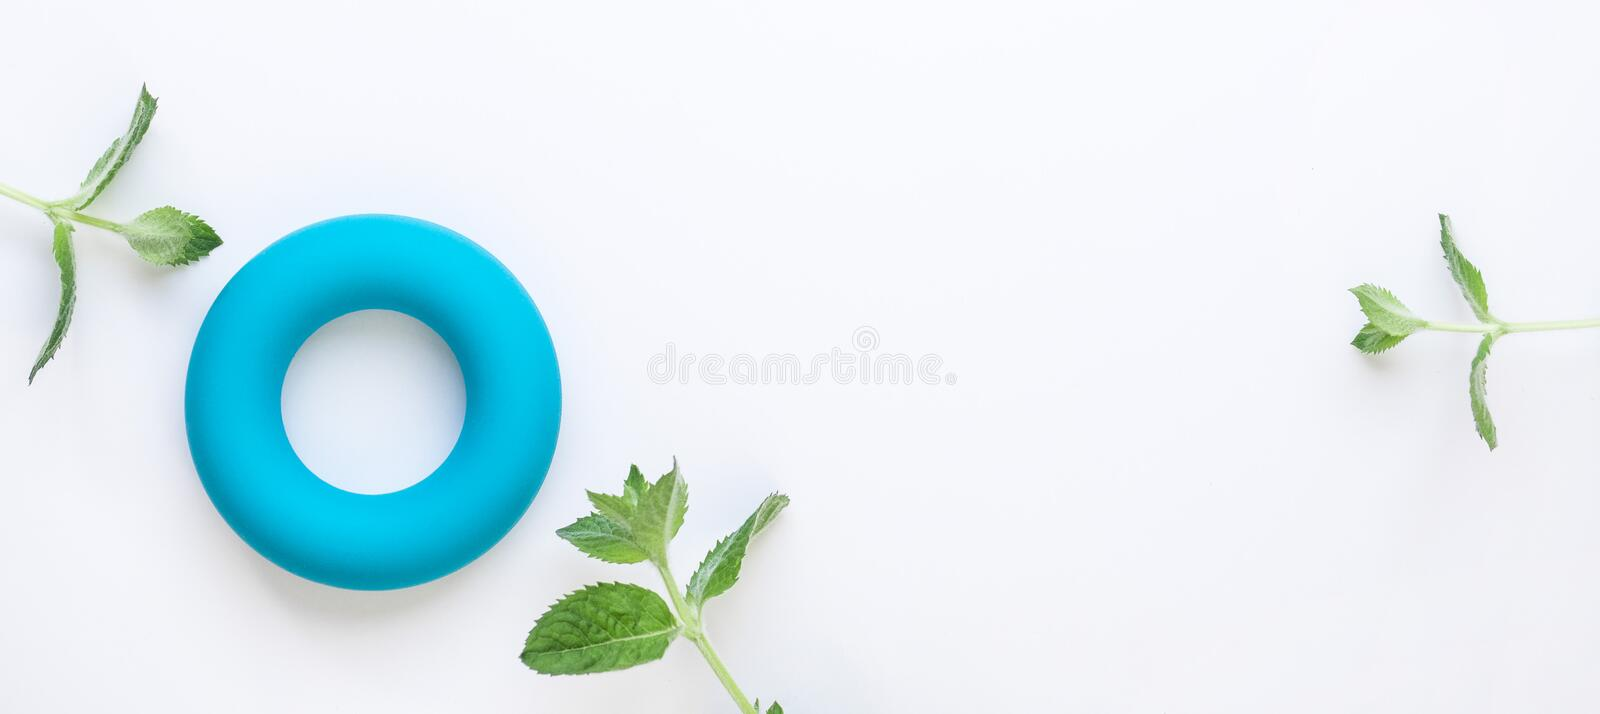 Zero calories and zero waste minimalistic concept background. Blue torus and fresh green mint leaves on white background. Flat lay royalty free stock photography